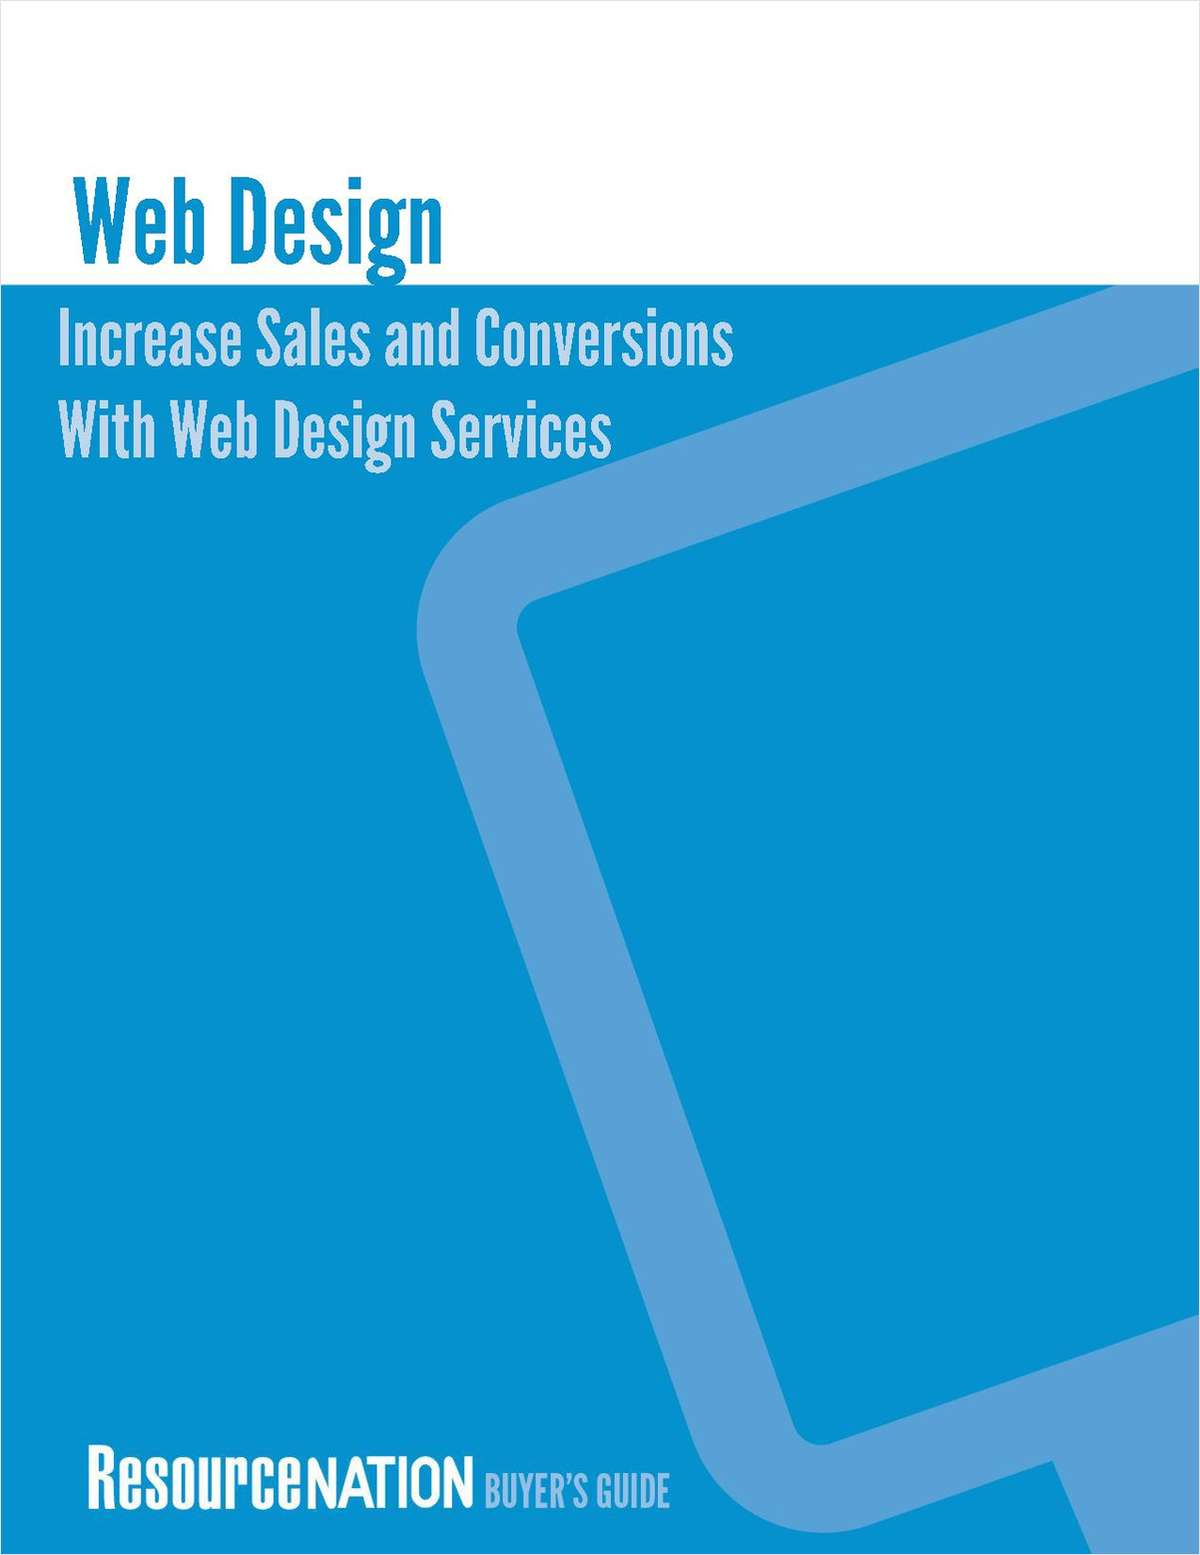 Increase Sales and Conversions With a Well-designed Web Site